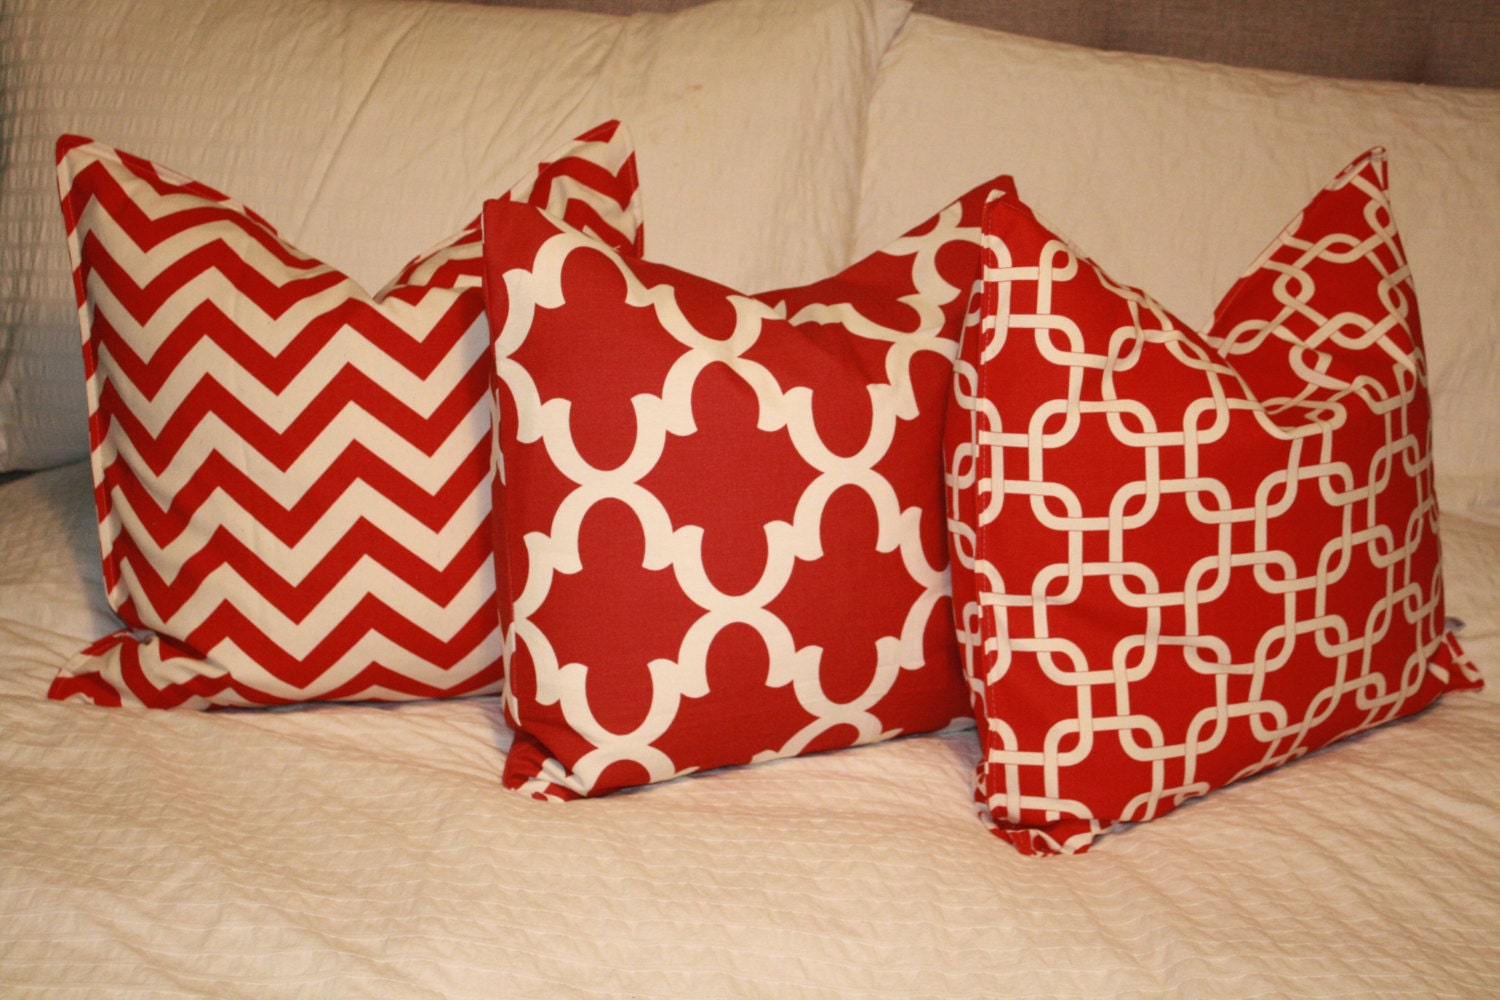 20 Square Throw Pillow Covers : 20 x 20 Square Pillow Cover - Red/Tan Chevron ZigZag, Cushion Cover, Throw Pillow, Premier ...